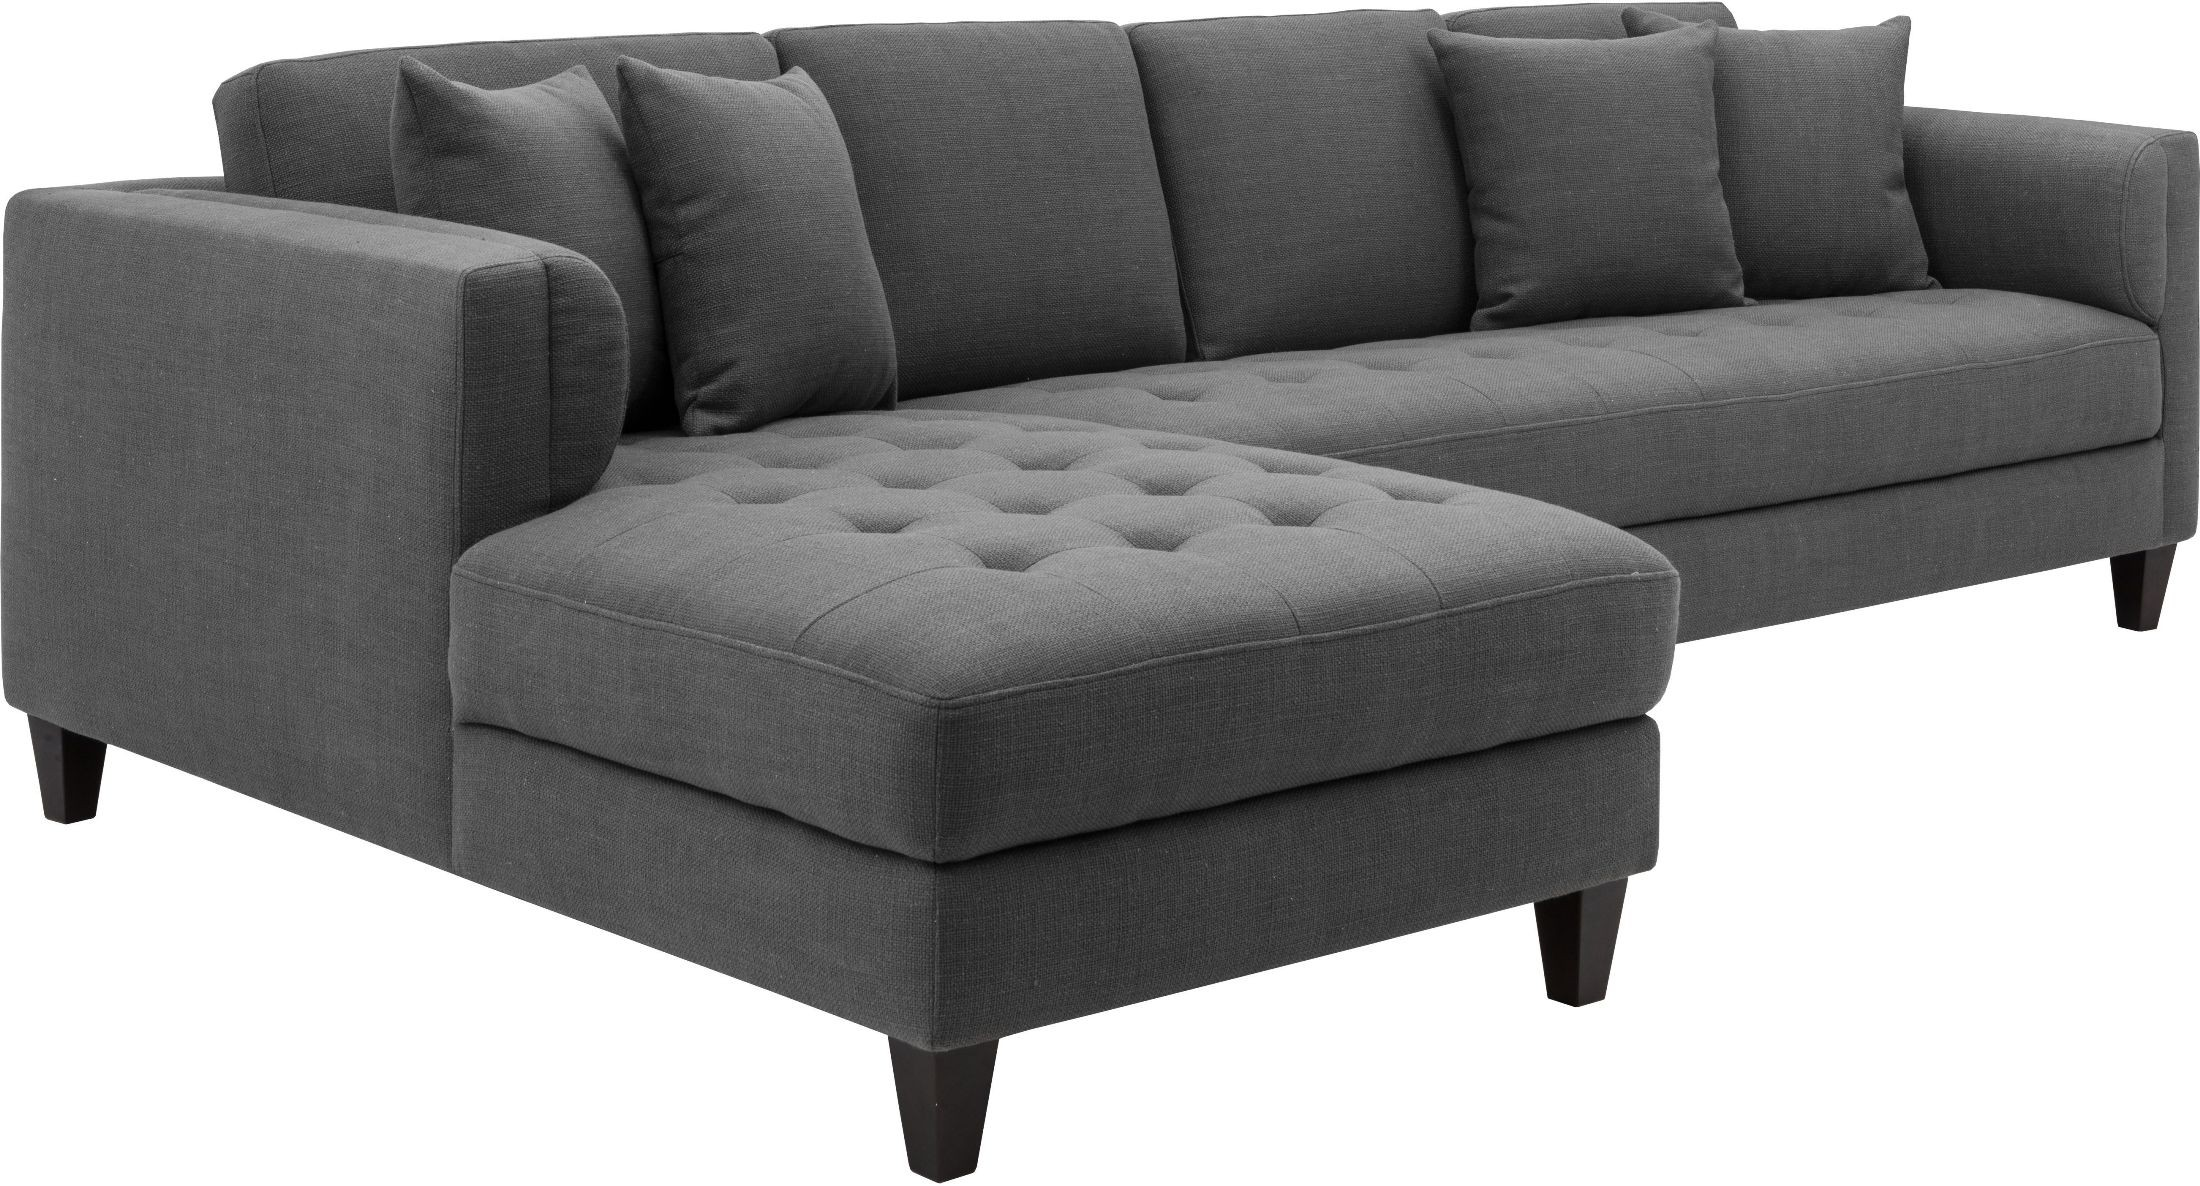 grey tweed sectional sofa very deep arthur upholstered laf chaise from sunpan